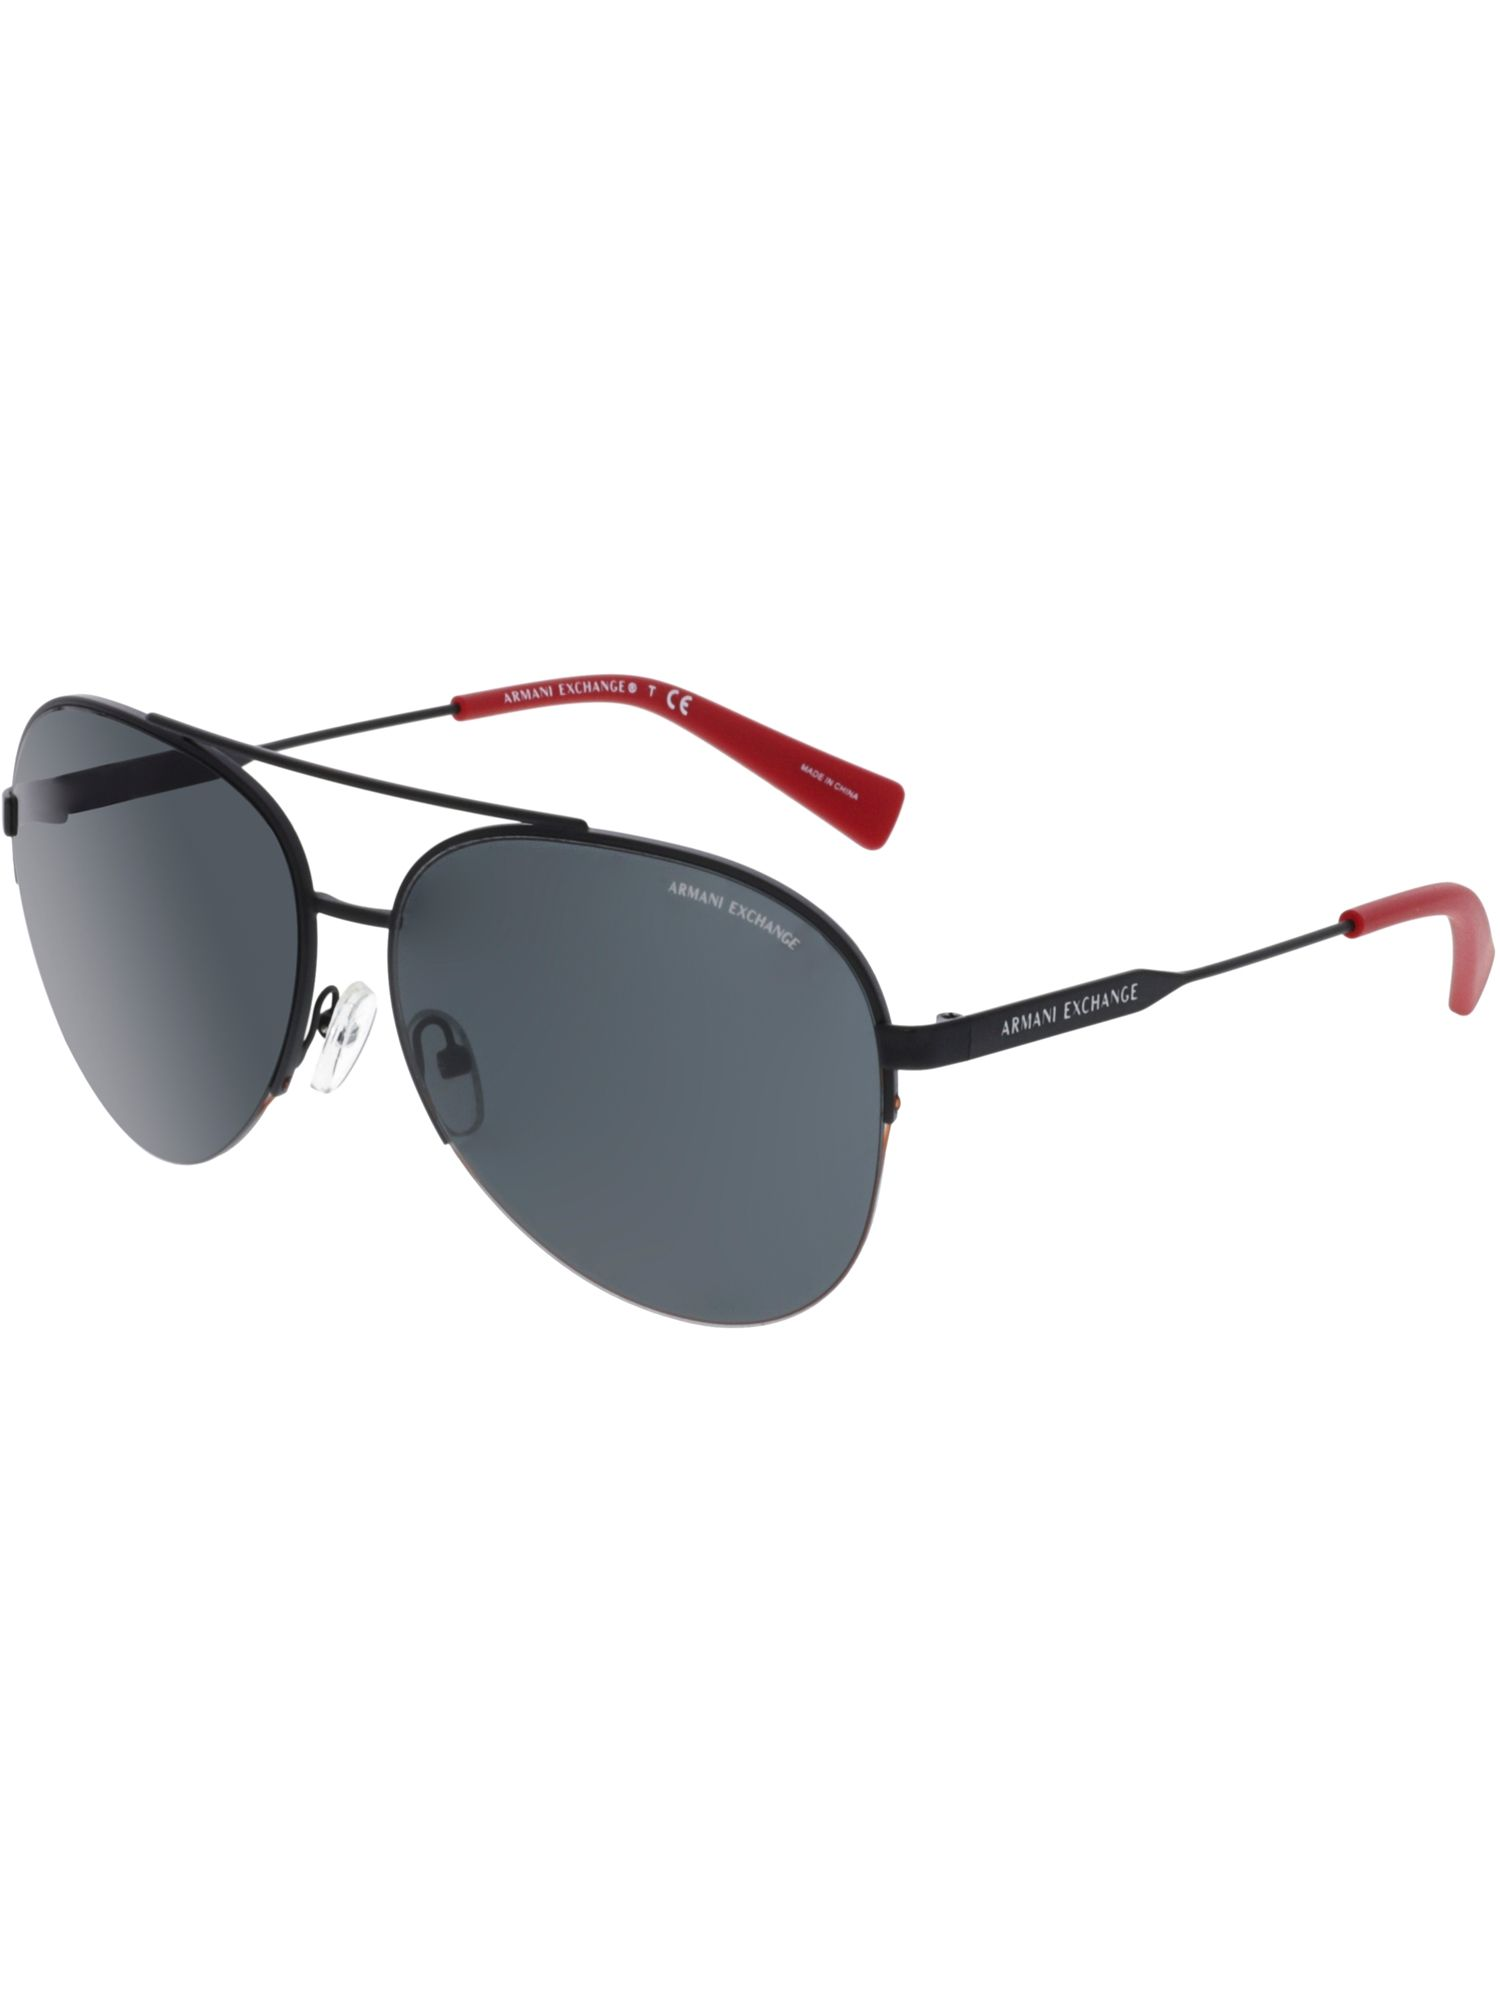 b04624dede1af ARMANI EXCHANGE ARMANI EXCHANGE MEN S AX2020S-606387-60 BLACK AVIATOR  SUNGLASSES.  armaniexchange